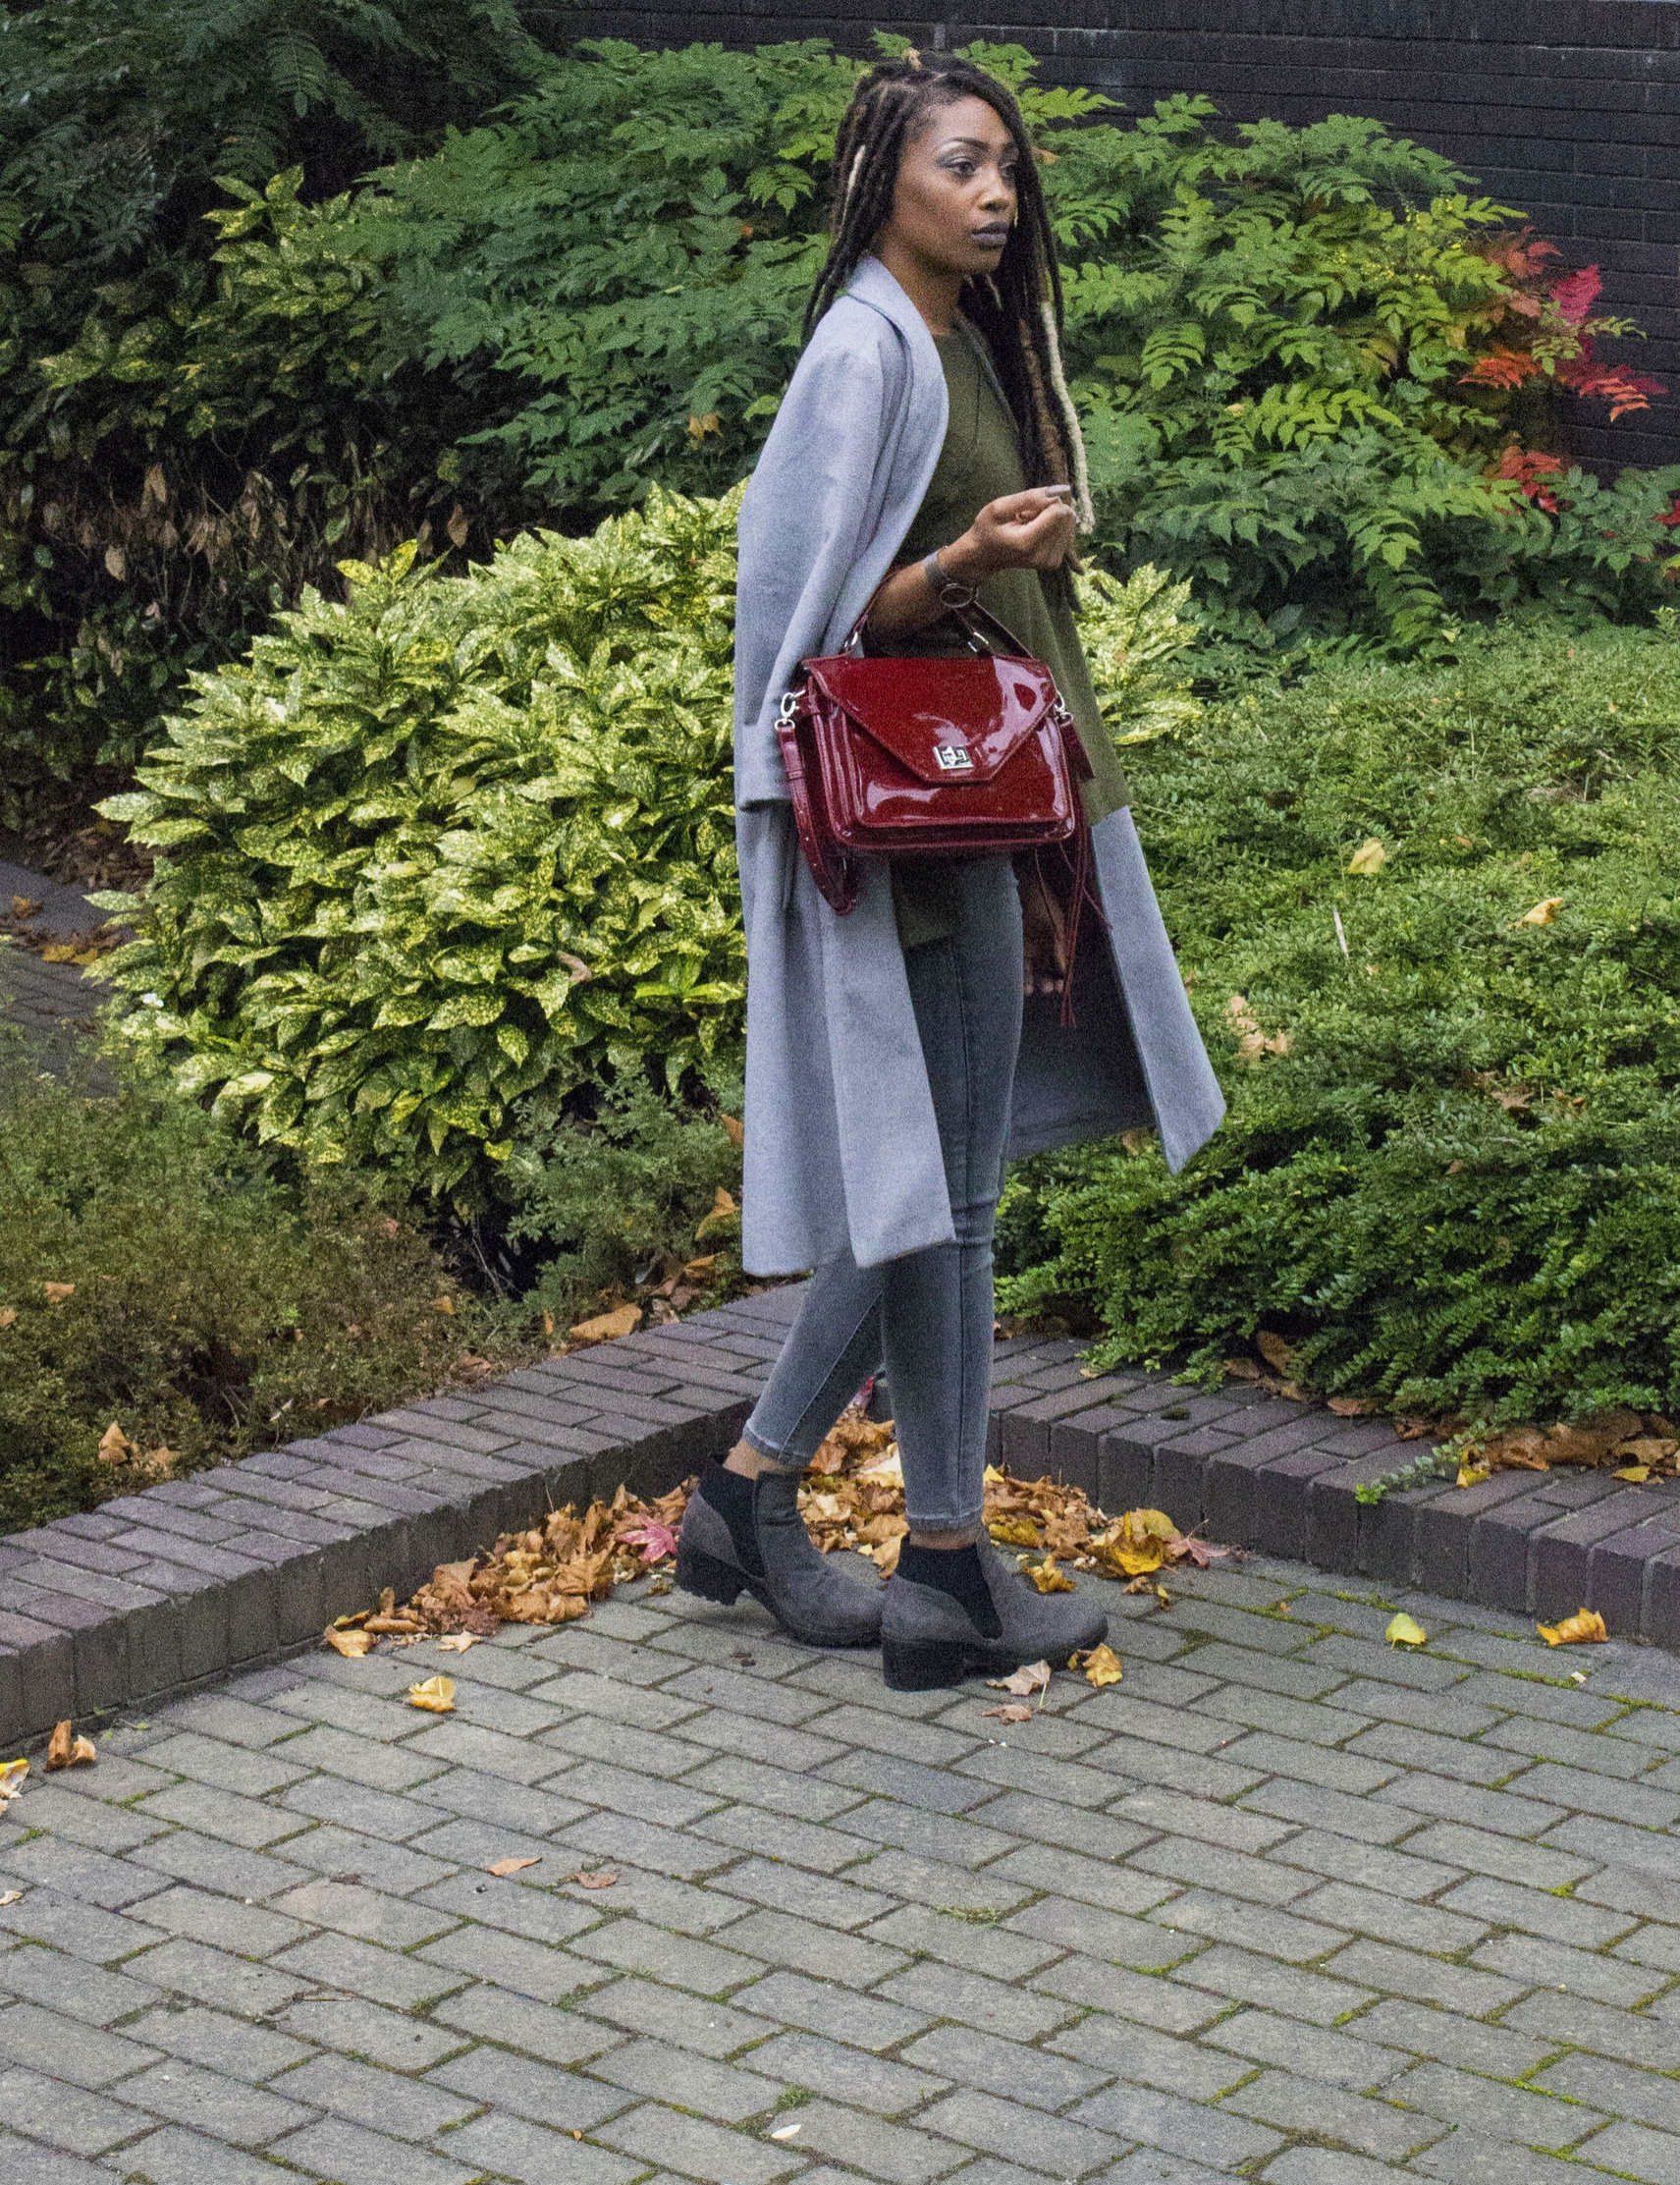 Khaki jumper grey coat grey jeans grey boots red bag for Autumn Winter